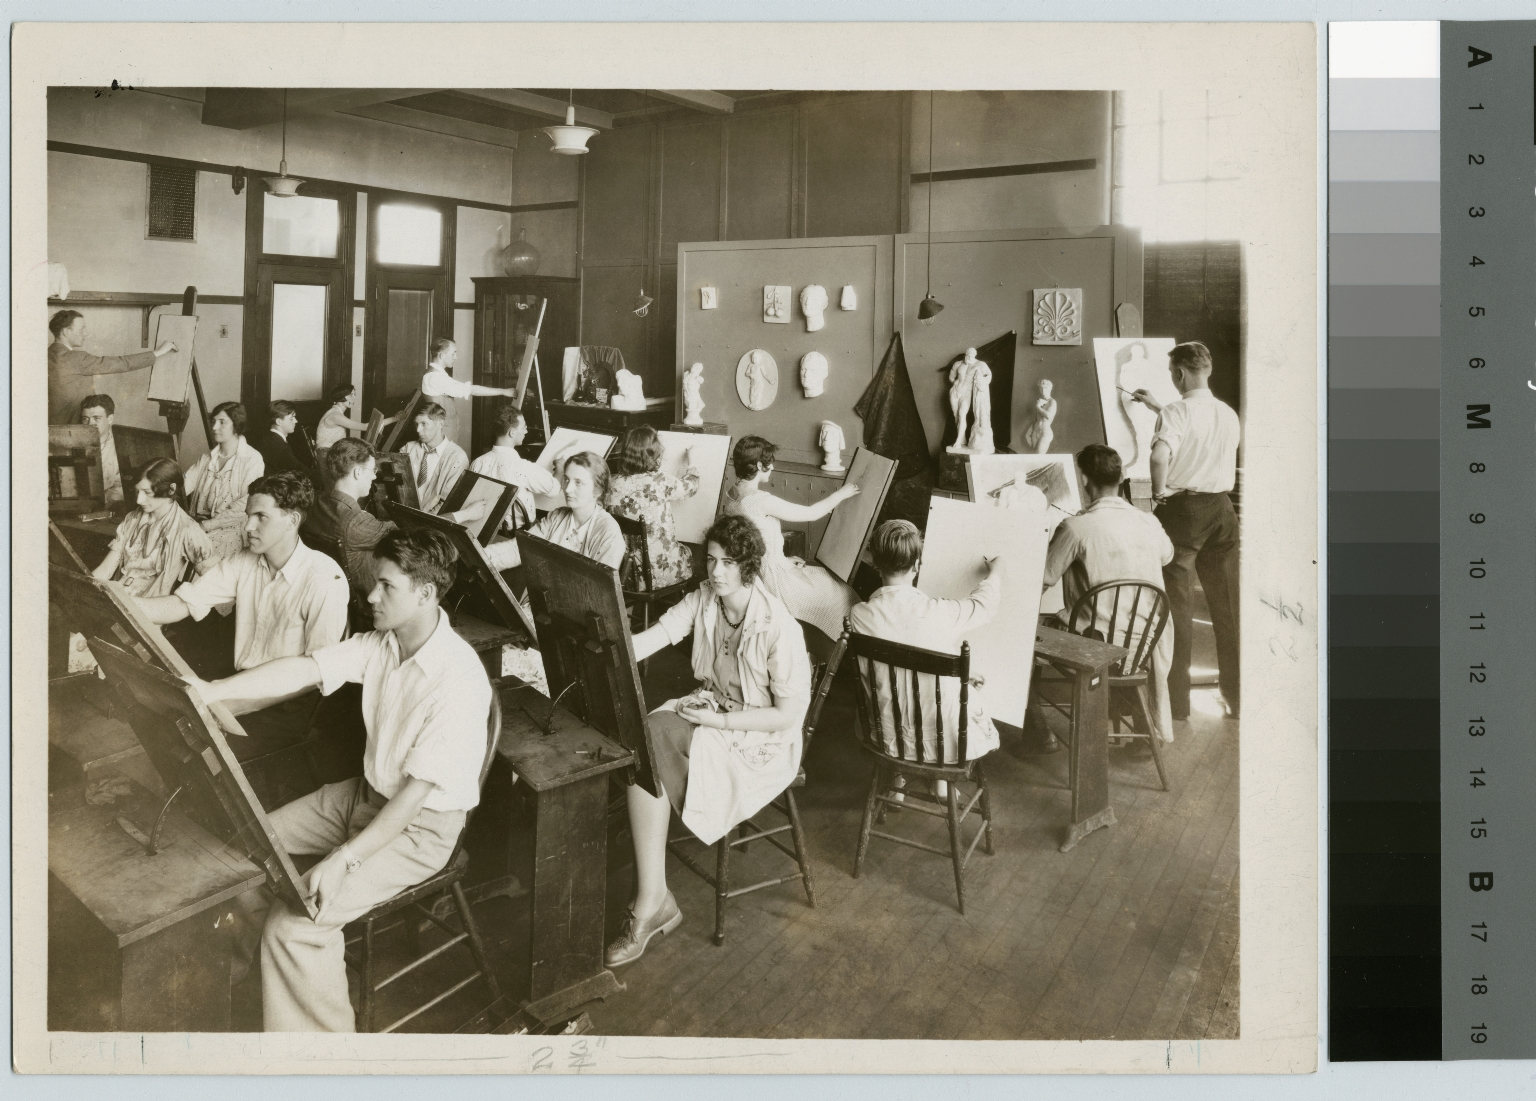 Modeling students, Department of Applied and Fine Arts, Rochester Athenaeum and Mechanics Institute